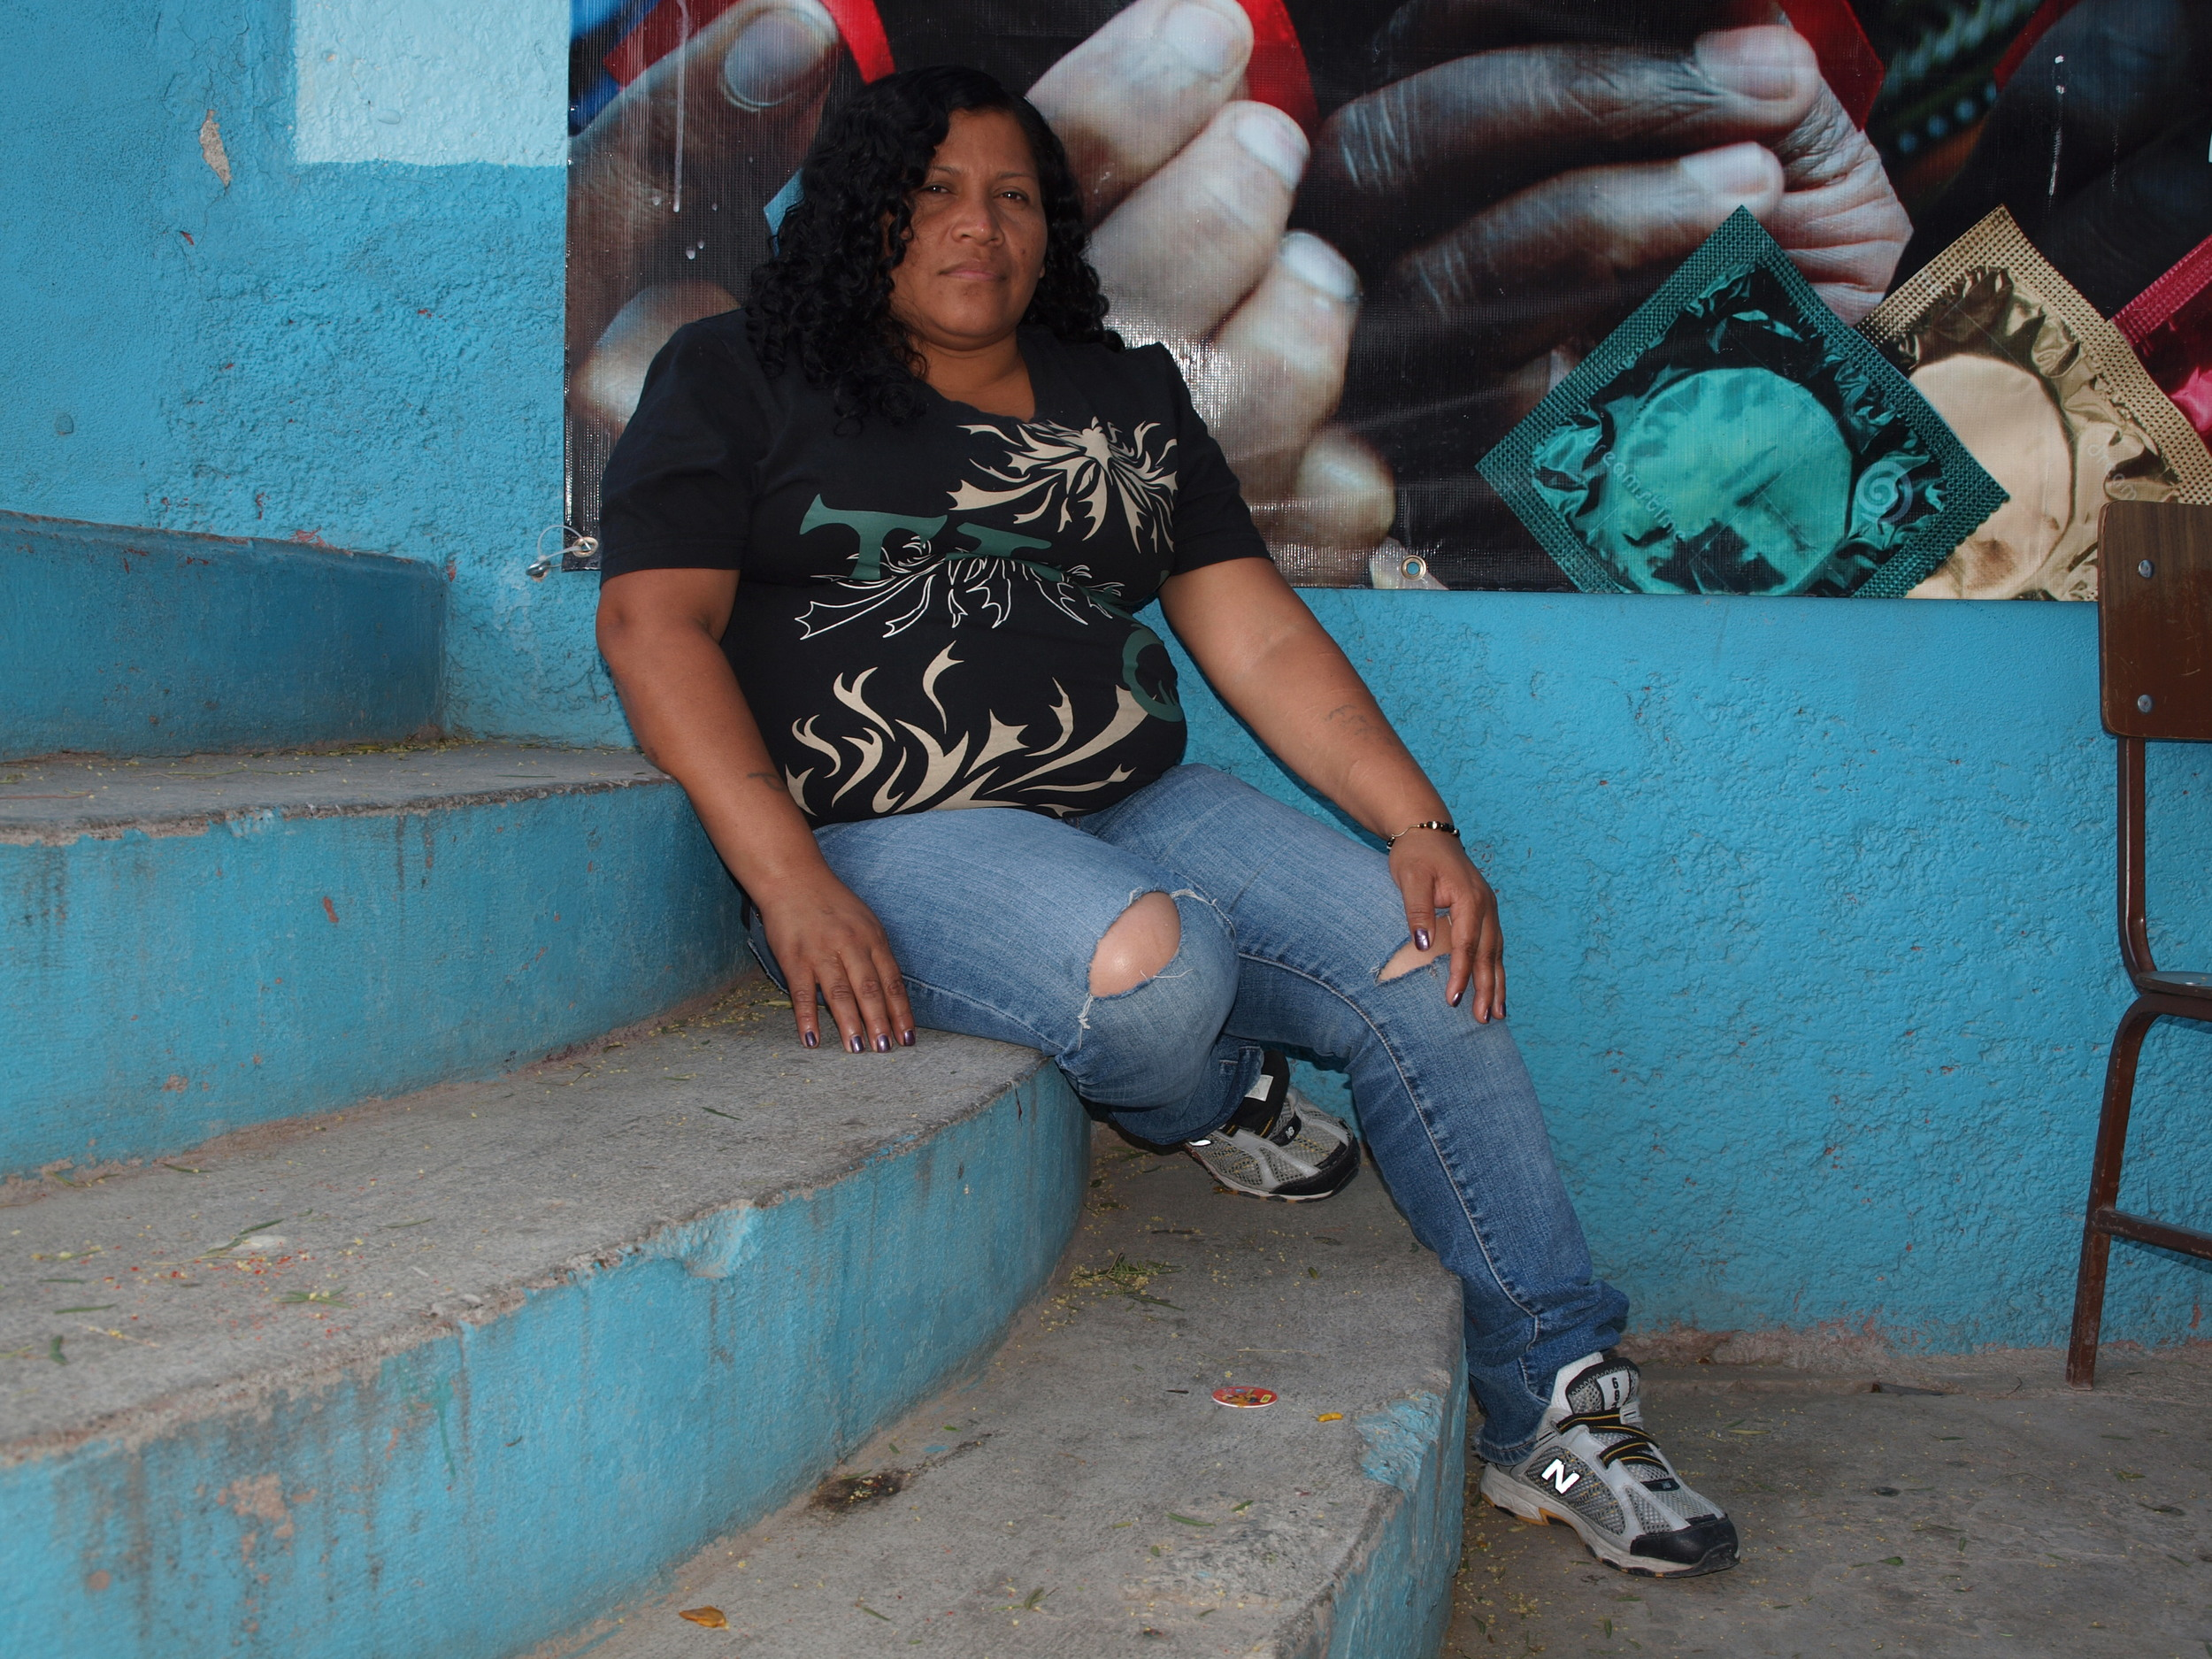 Sulma Ortega and her family were victimised by the MS-13 drug cartel in Guatemala and granted asylum in Mexico. But they have received no help from the Mexican government to rebuild their lives there, and they are now looking to reach the US.